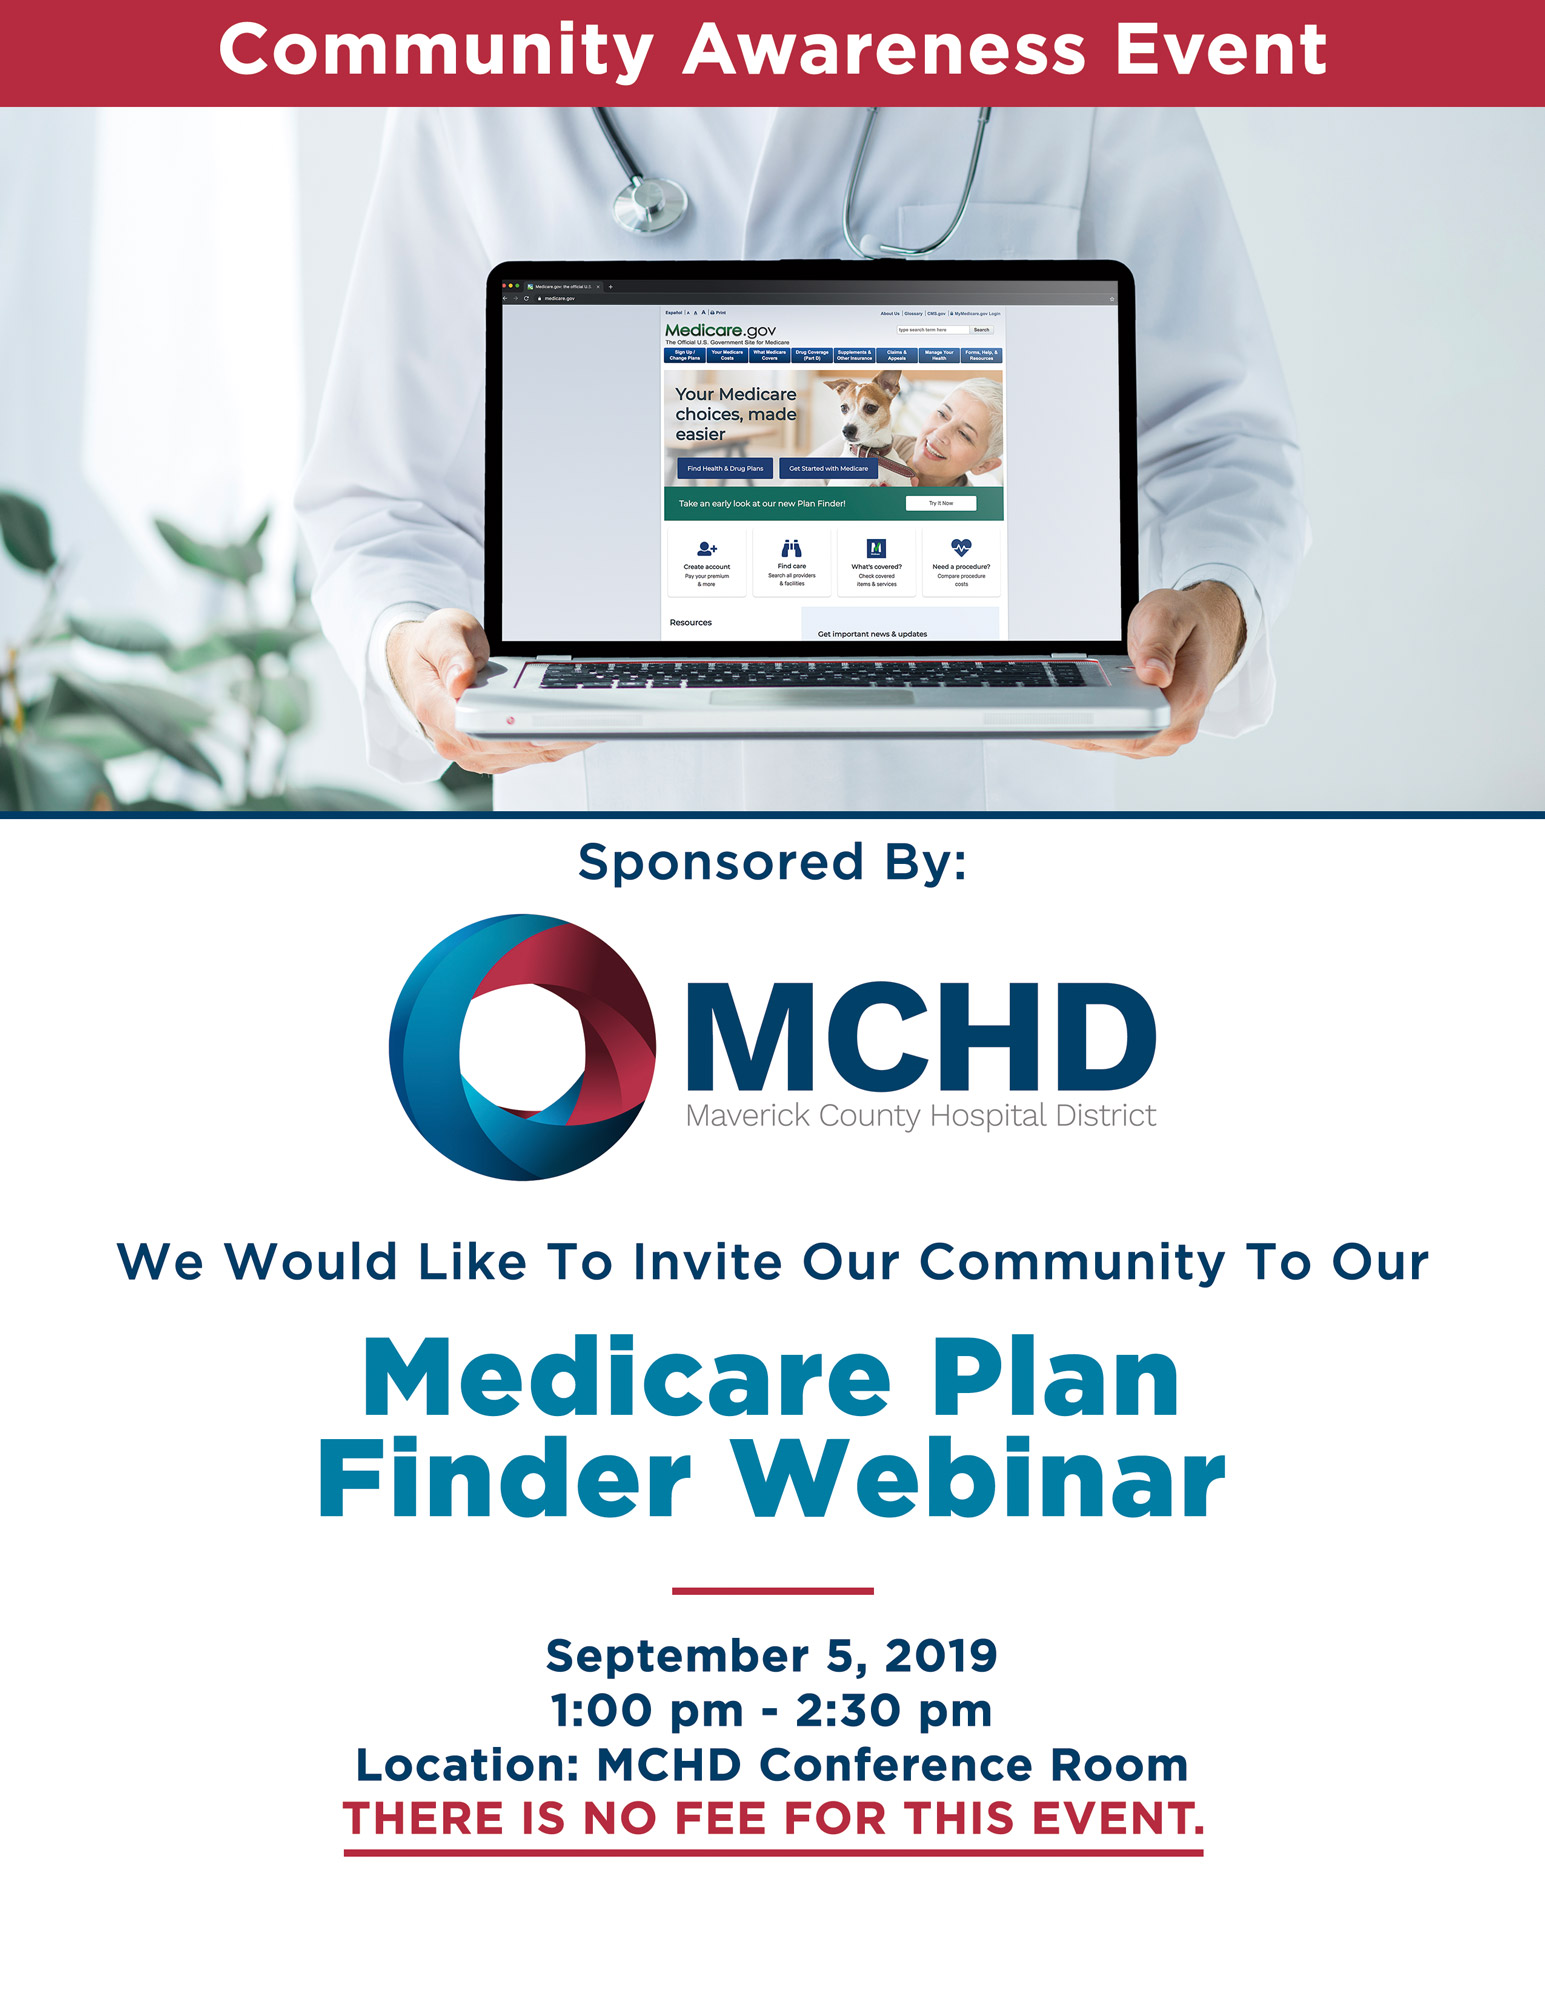 New-Medicare-Plan-Finder-Webinar.jpg